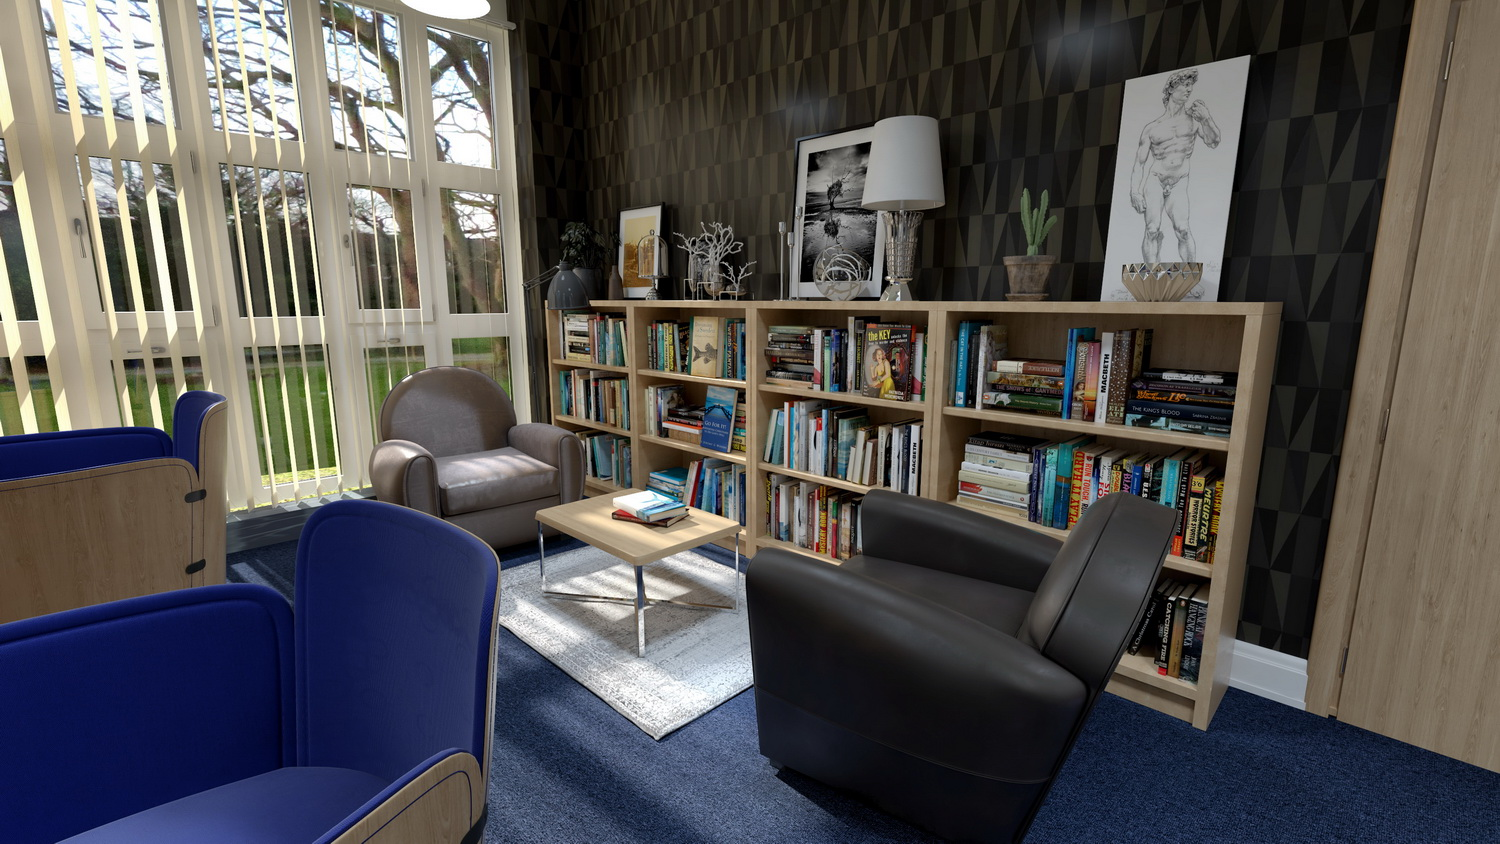 One of the rooms inside the Endsleigh Park development.